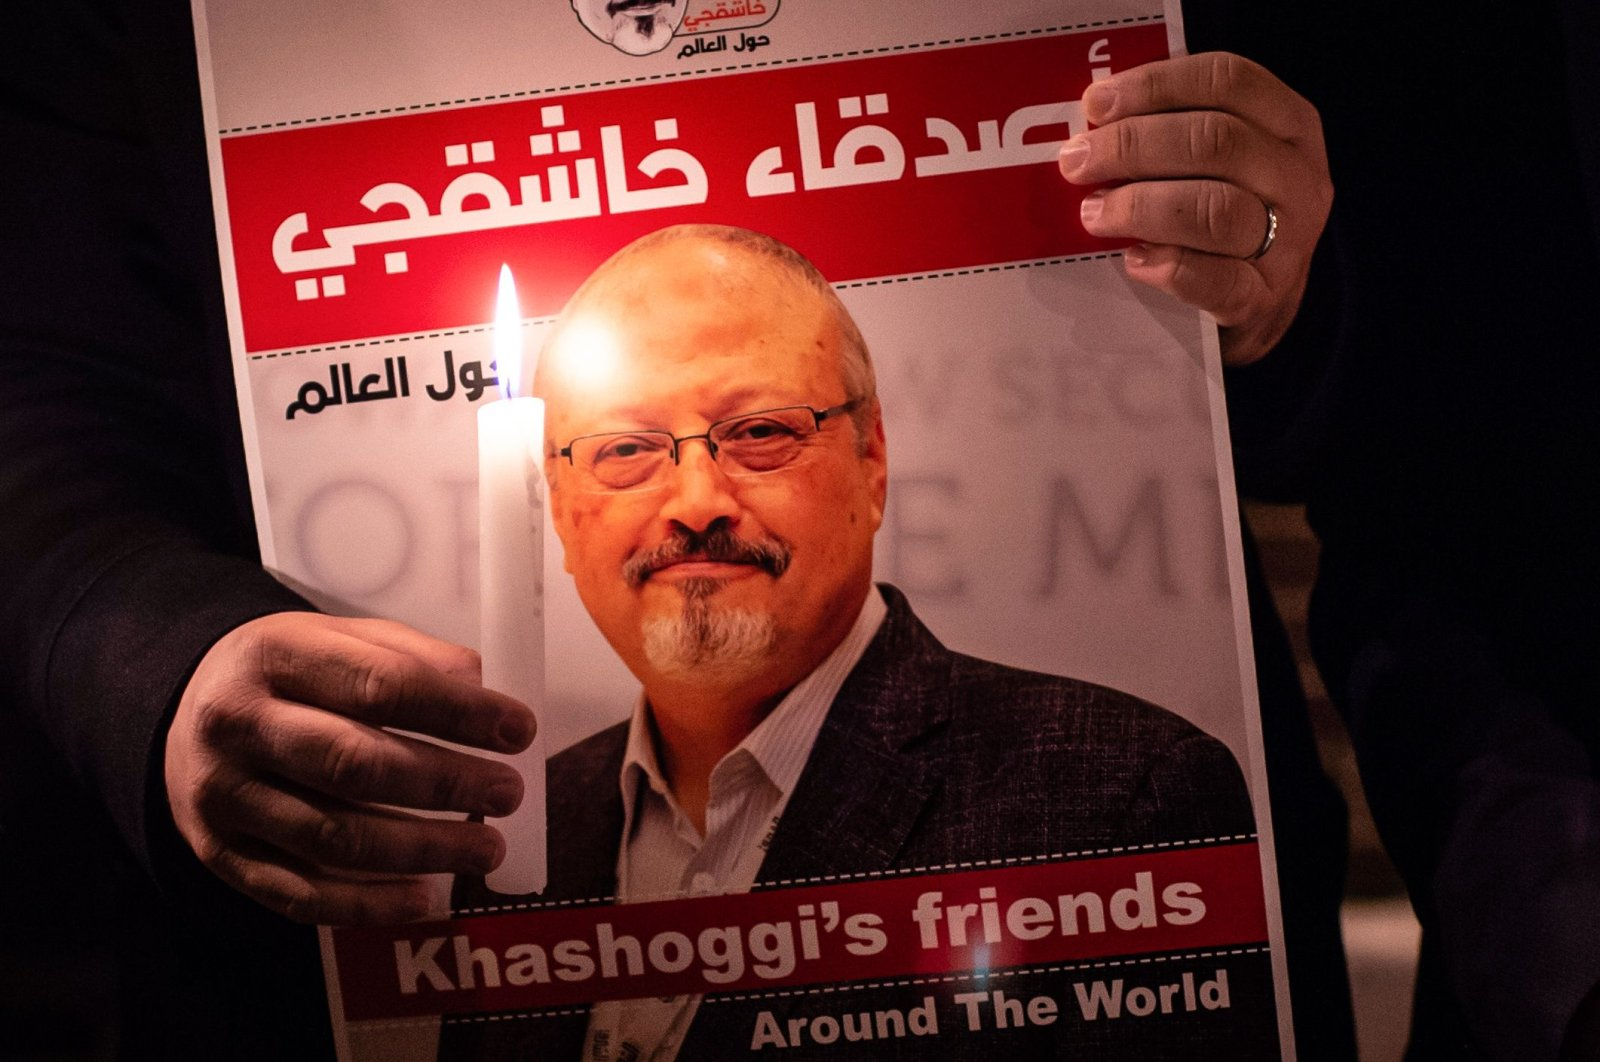 A demonstrator holds a poster picturing Saudi journalist Jamal Khashoggi and a lighted candle during a gathering outside Saudi Arabia's consulate in Istanbul, Turkey, Oct. 25, 2018. (AFP Photo)